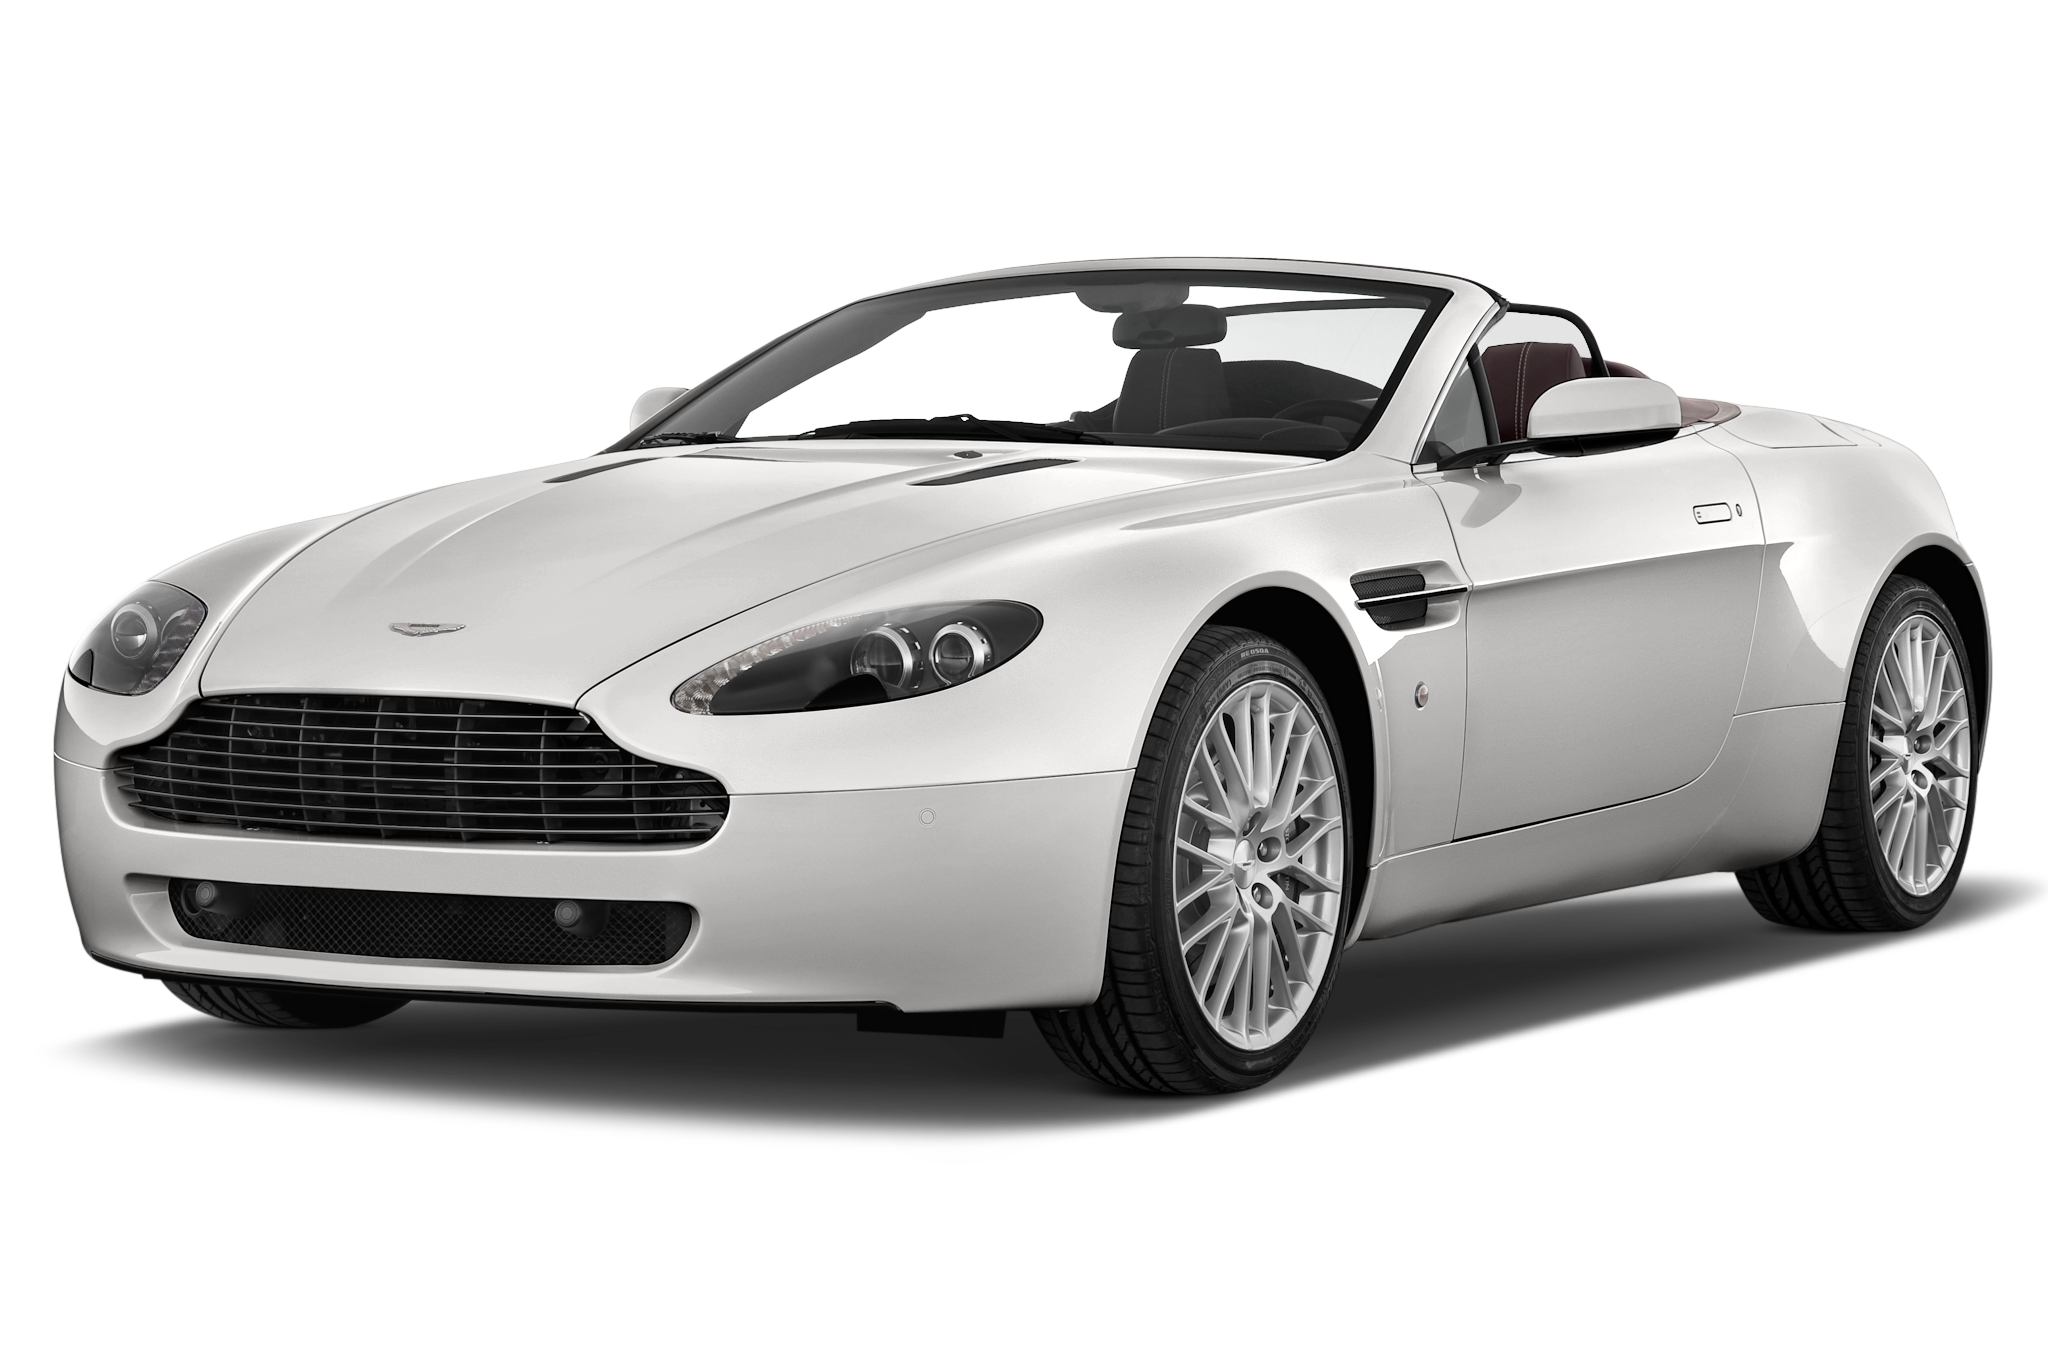 Aston Martin V8 Vantage Reviews Research New & Used Models